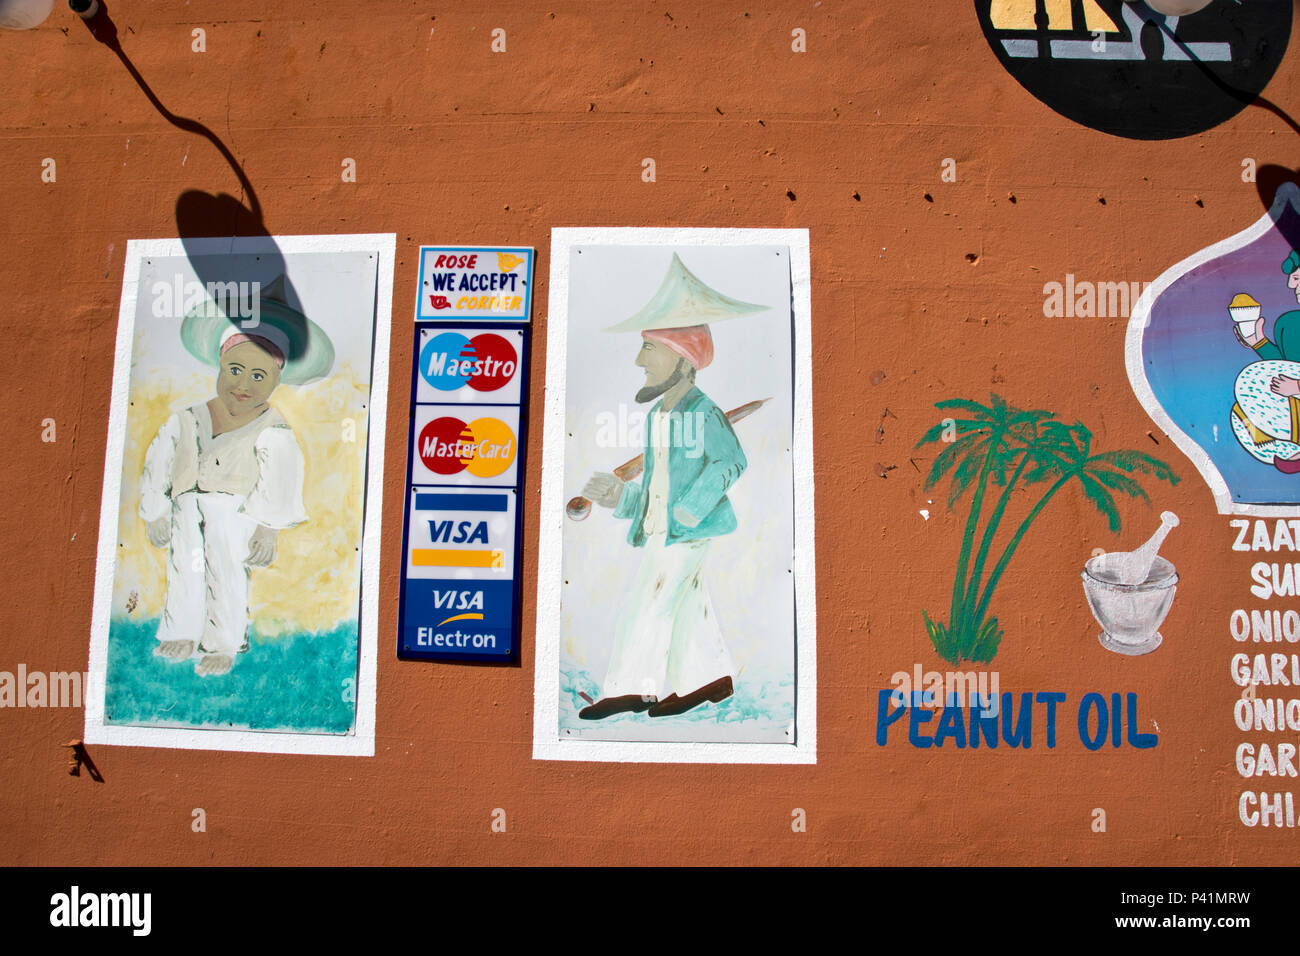 Hand painted advertisement for oil, spices and credit cards on a shop wall in the Bo-Kaap neighborhood in Cape Town, South Africa. - Stock Image